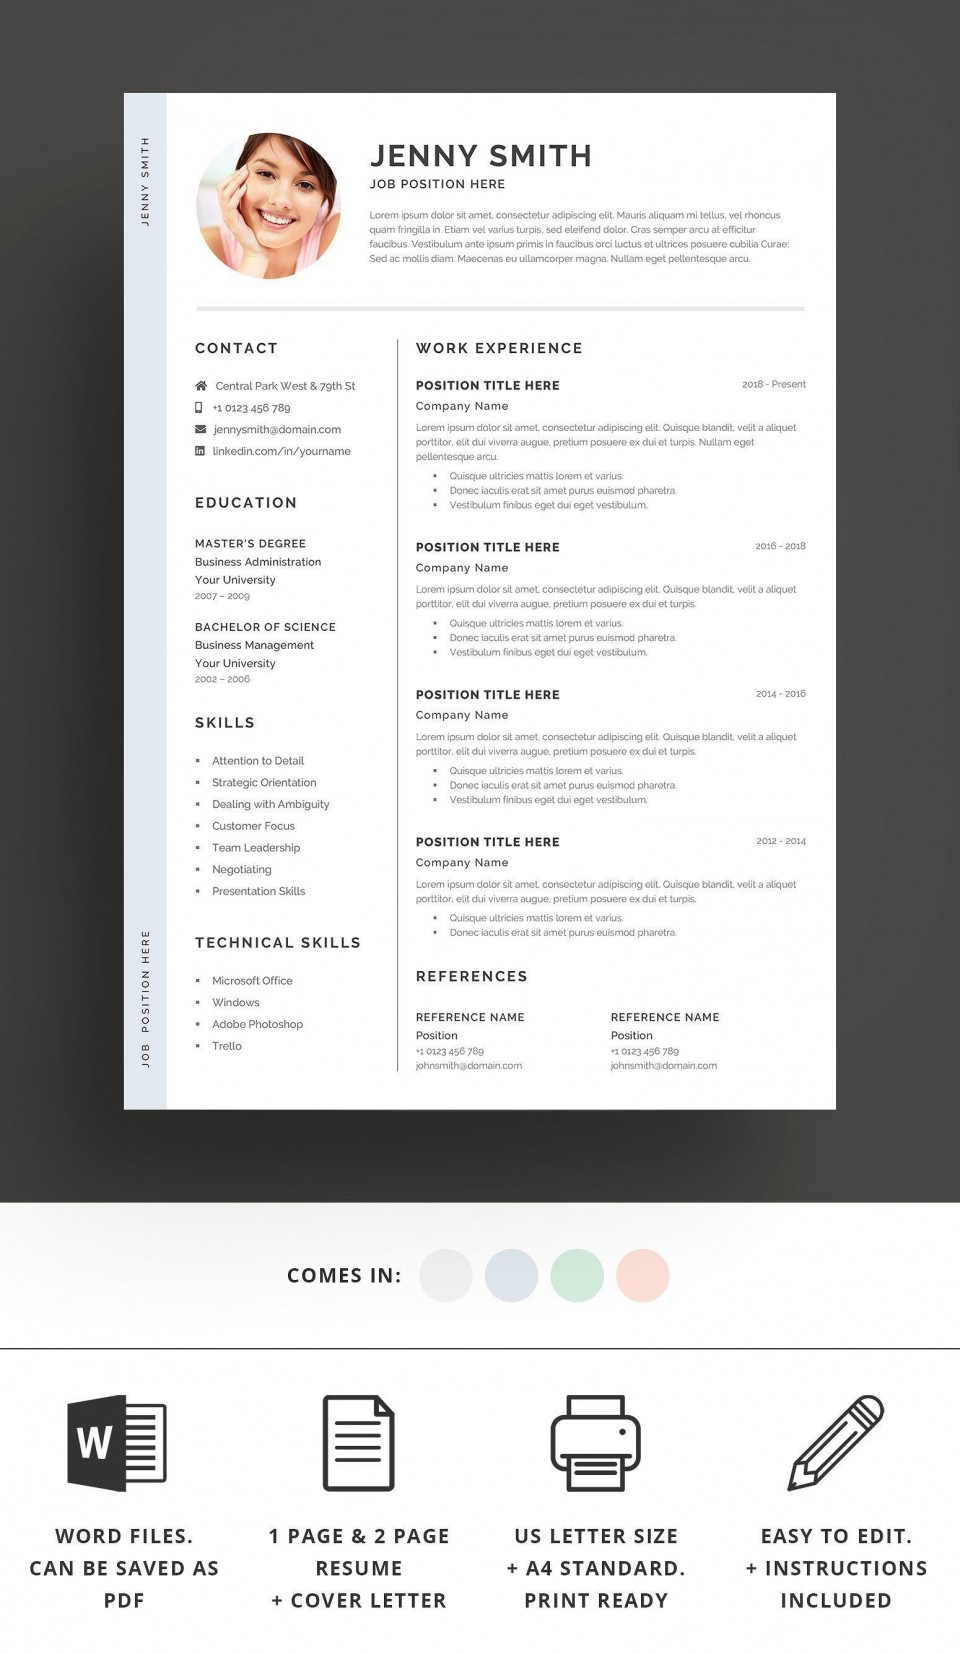 002 Top Resume Template Word 2016 High Definition  Cv Microsoft Download Free960